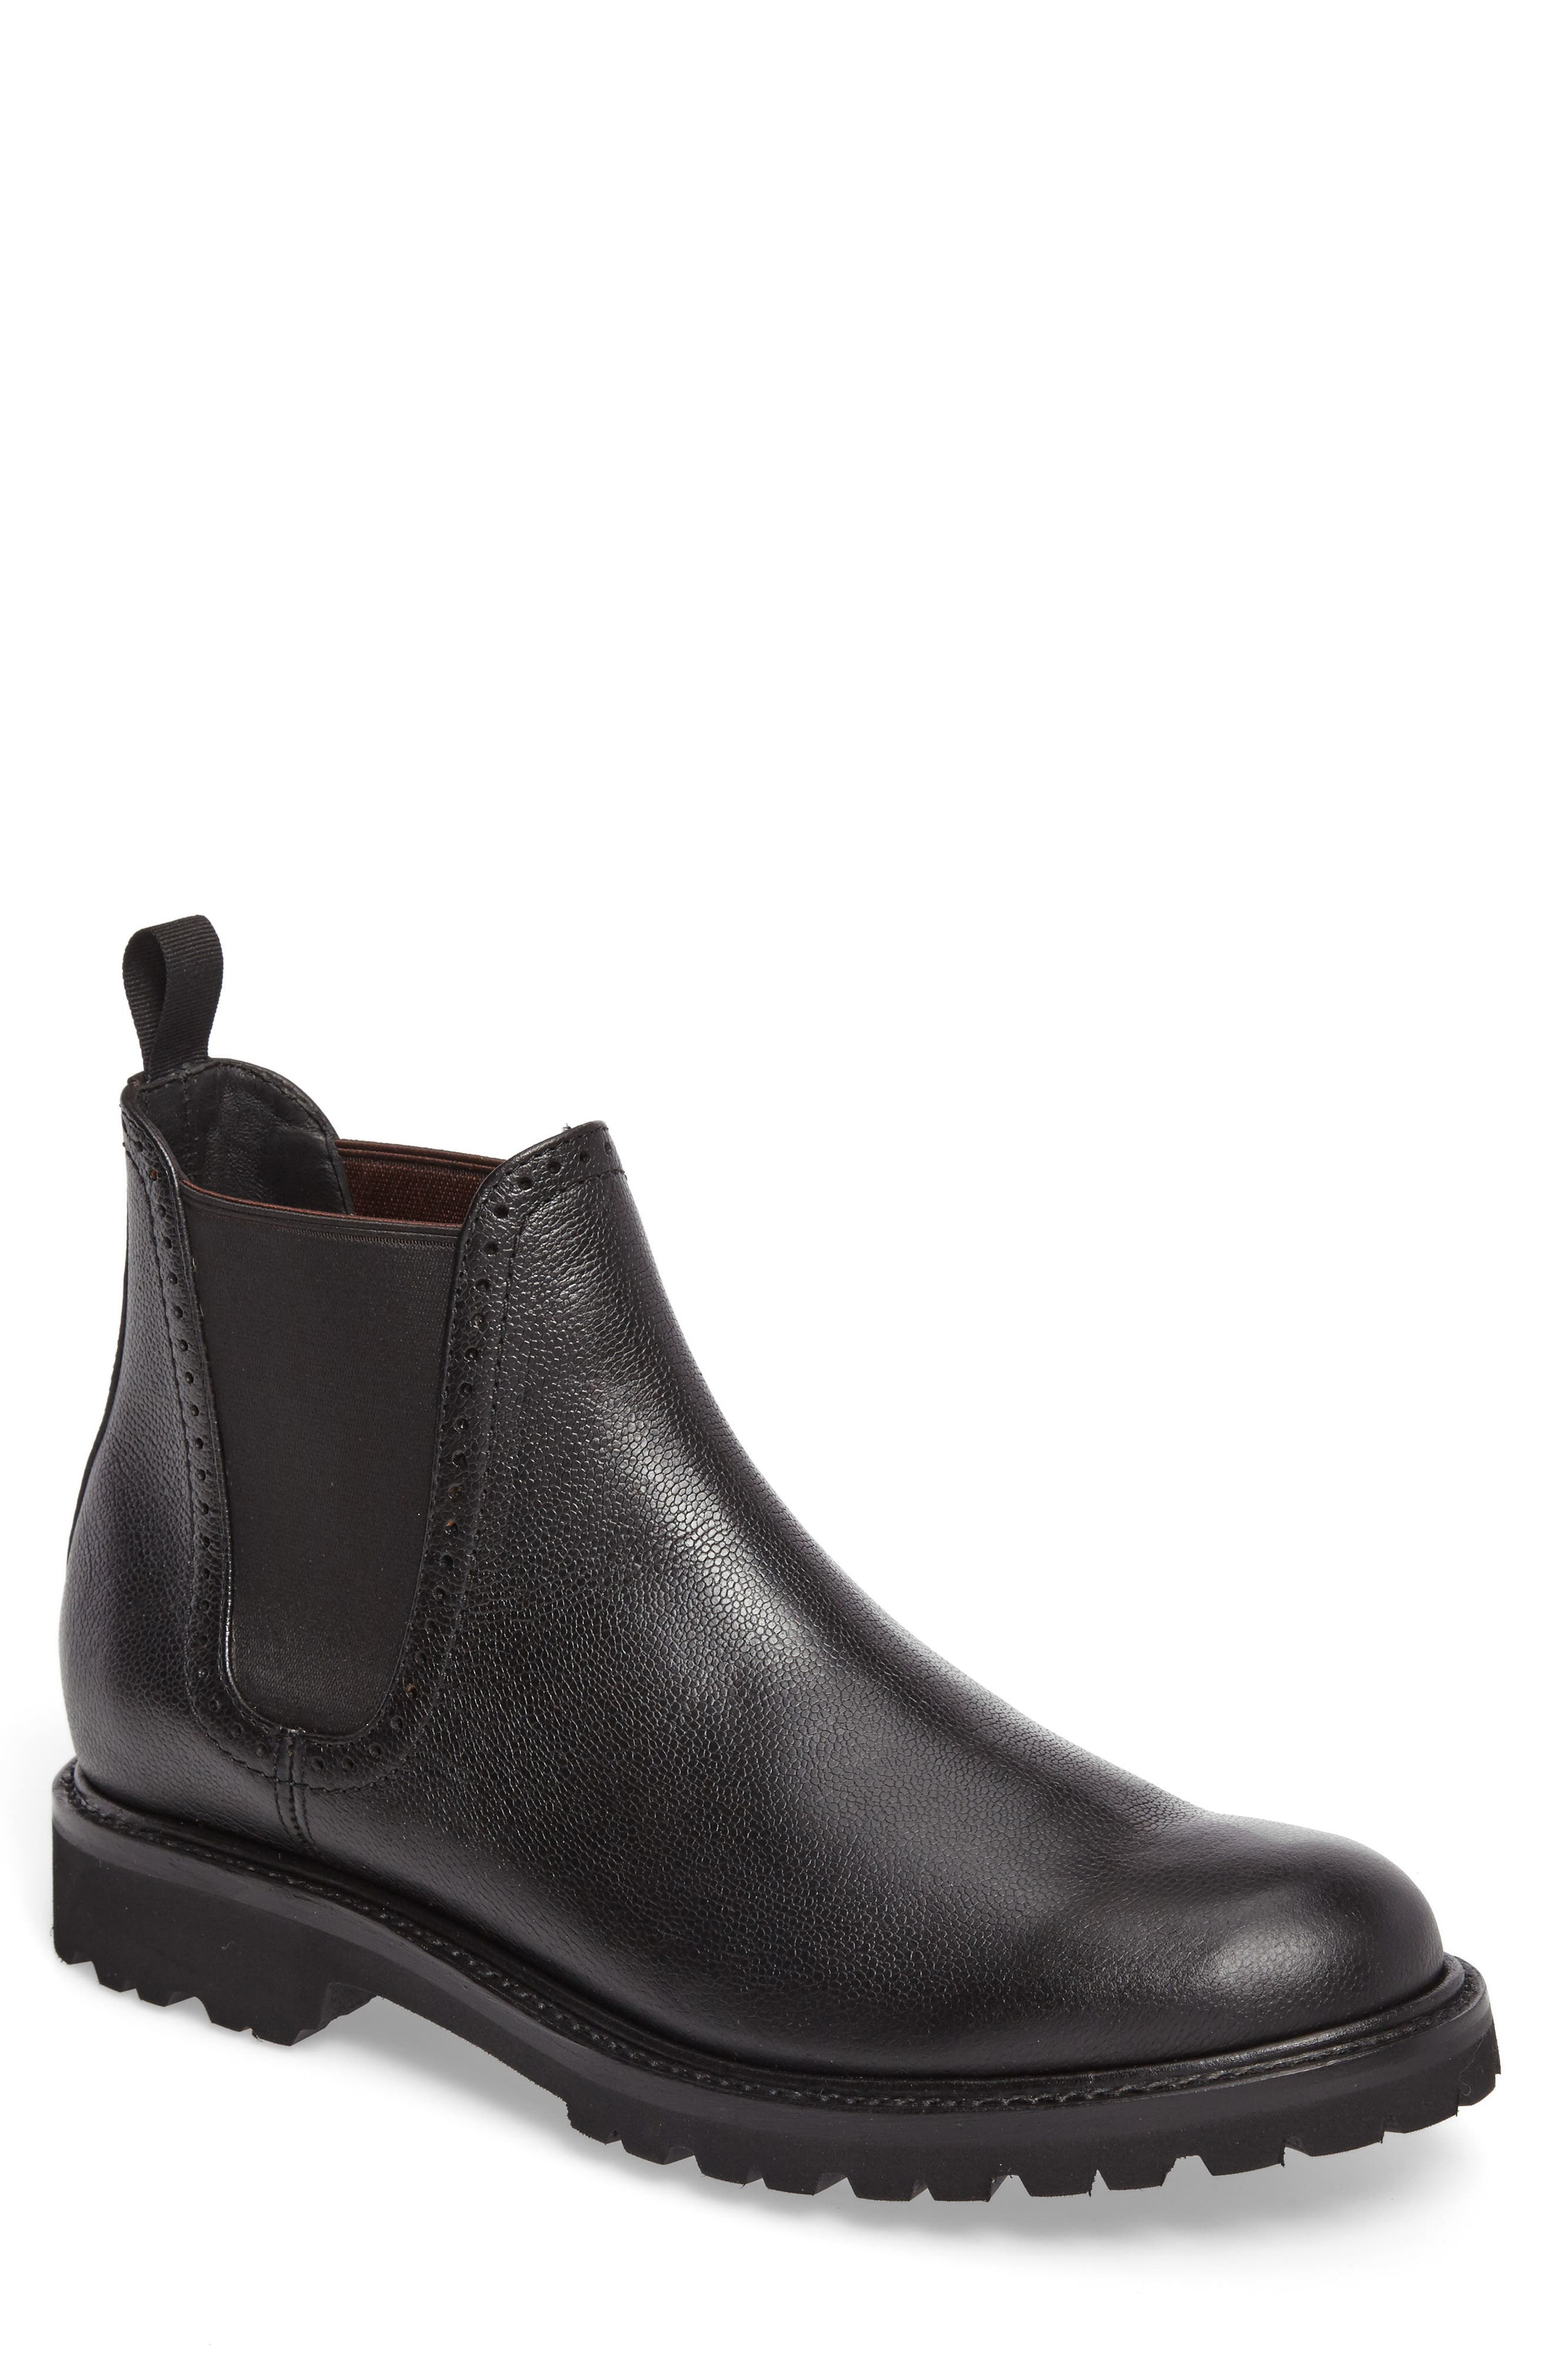 Cromwell Chelsea Boot,                             Main thumbnail 1, color,                             Black